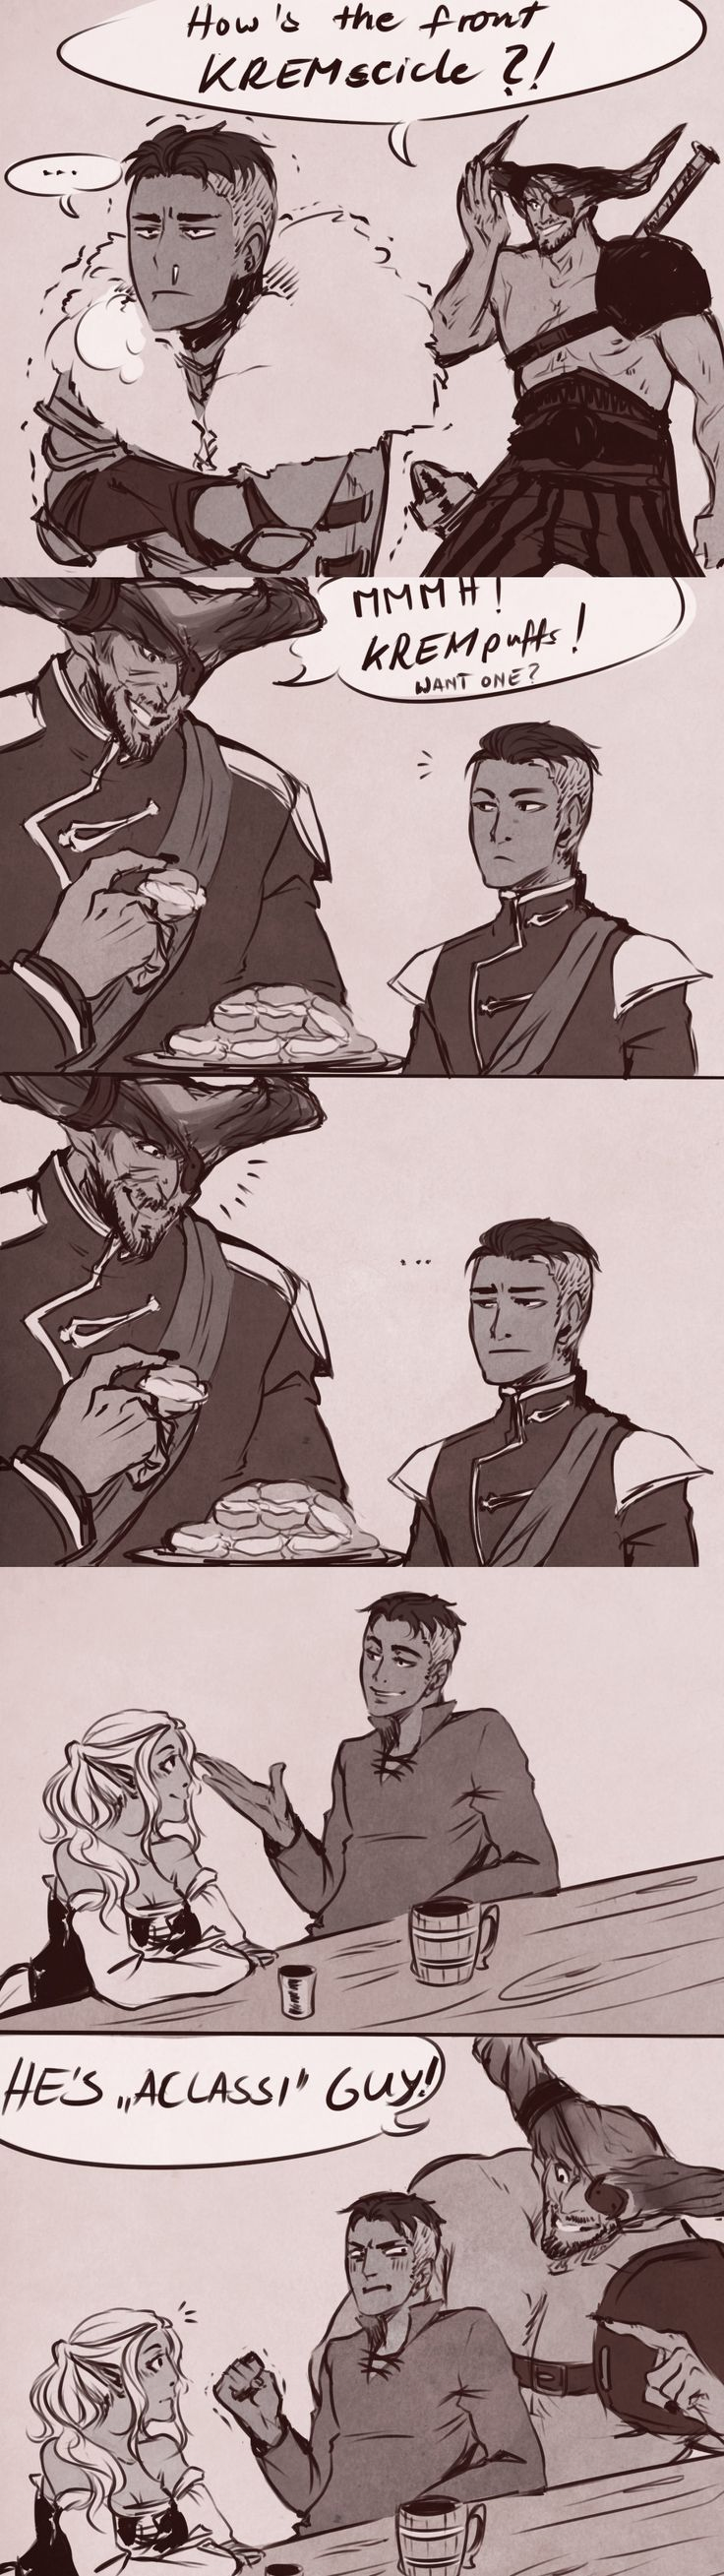 Iron Bull would have some pretty terrible name puns for Krem.